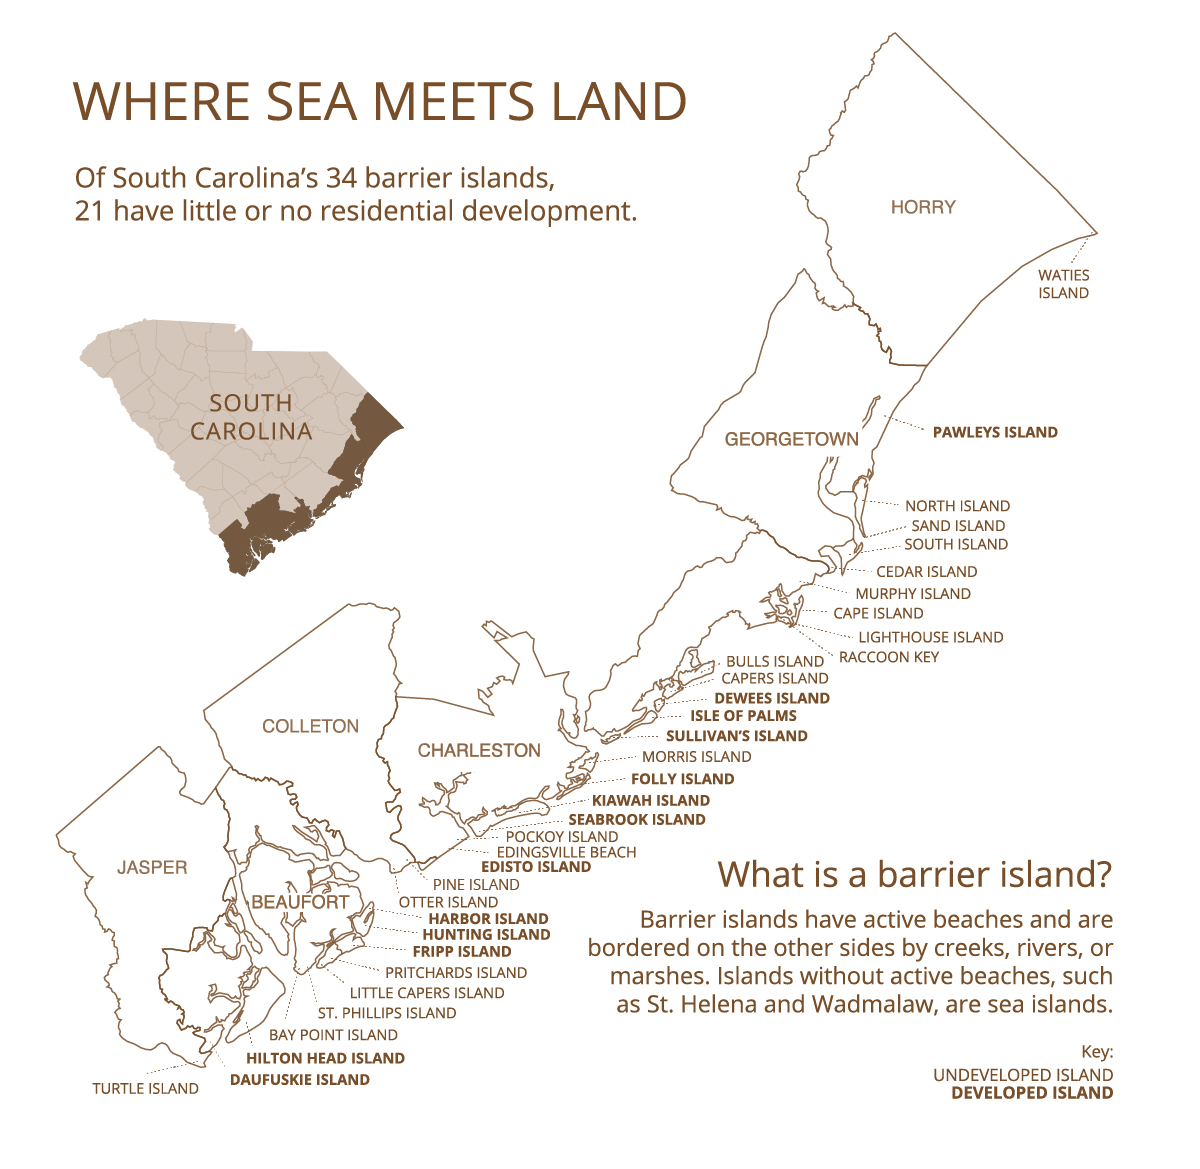 A map of coastal South Carolina lists 34 barrier islands, 21 of which have little to no development.